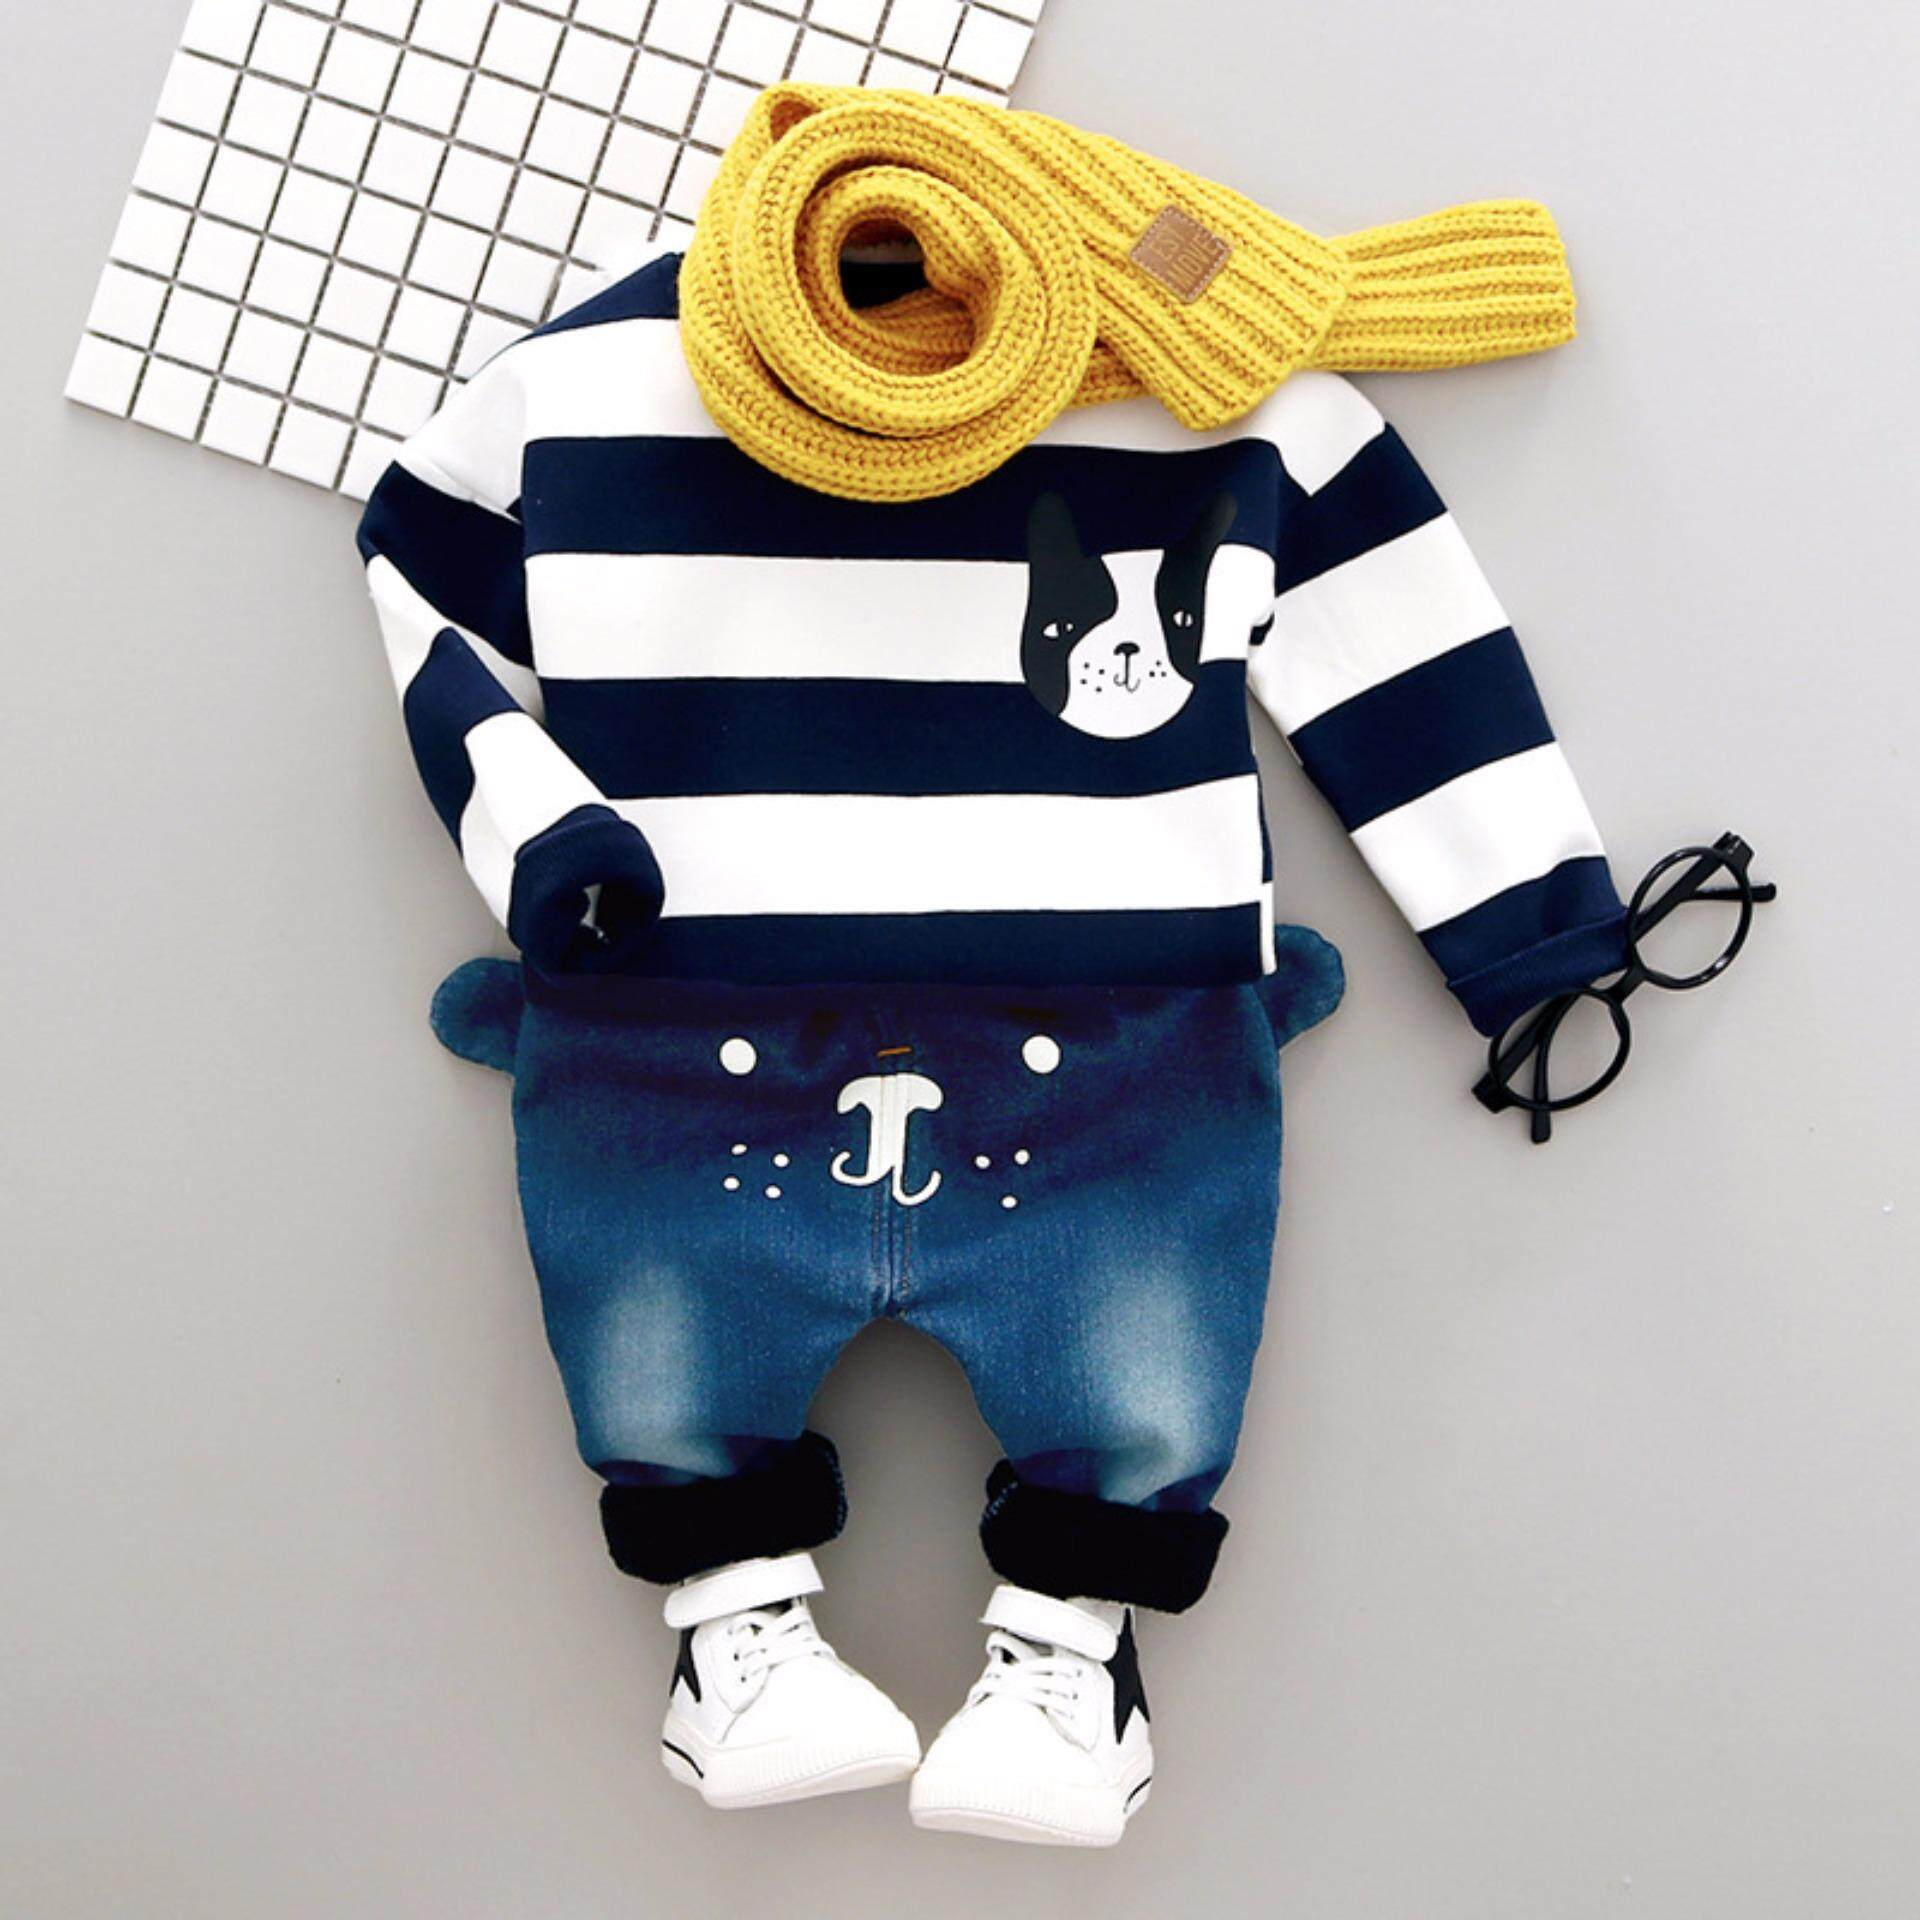 Baby Clothes Unisex. IDR 389,250 IDR389250. View Detail. Soonyip Bayi .